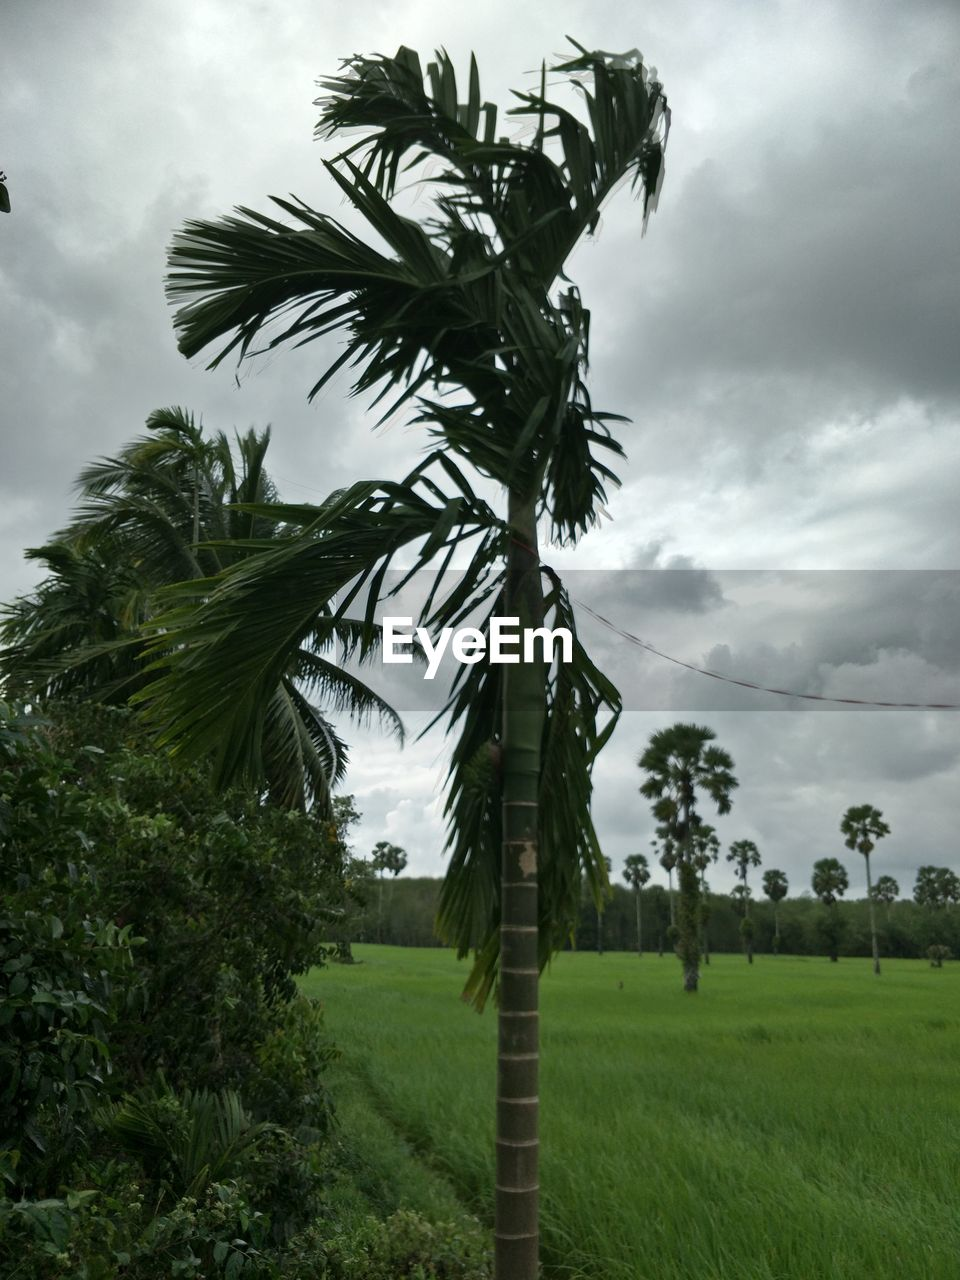 plant, sky, growth, cloud - sky, tree, beauty in nature, tropical climate, green color, palm tree, land, nature, field, environment, tranquility, landscape, day, grass, no people, scenics - nature, tranquil scene, outdoors, coconut palm tree, palm leaf